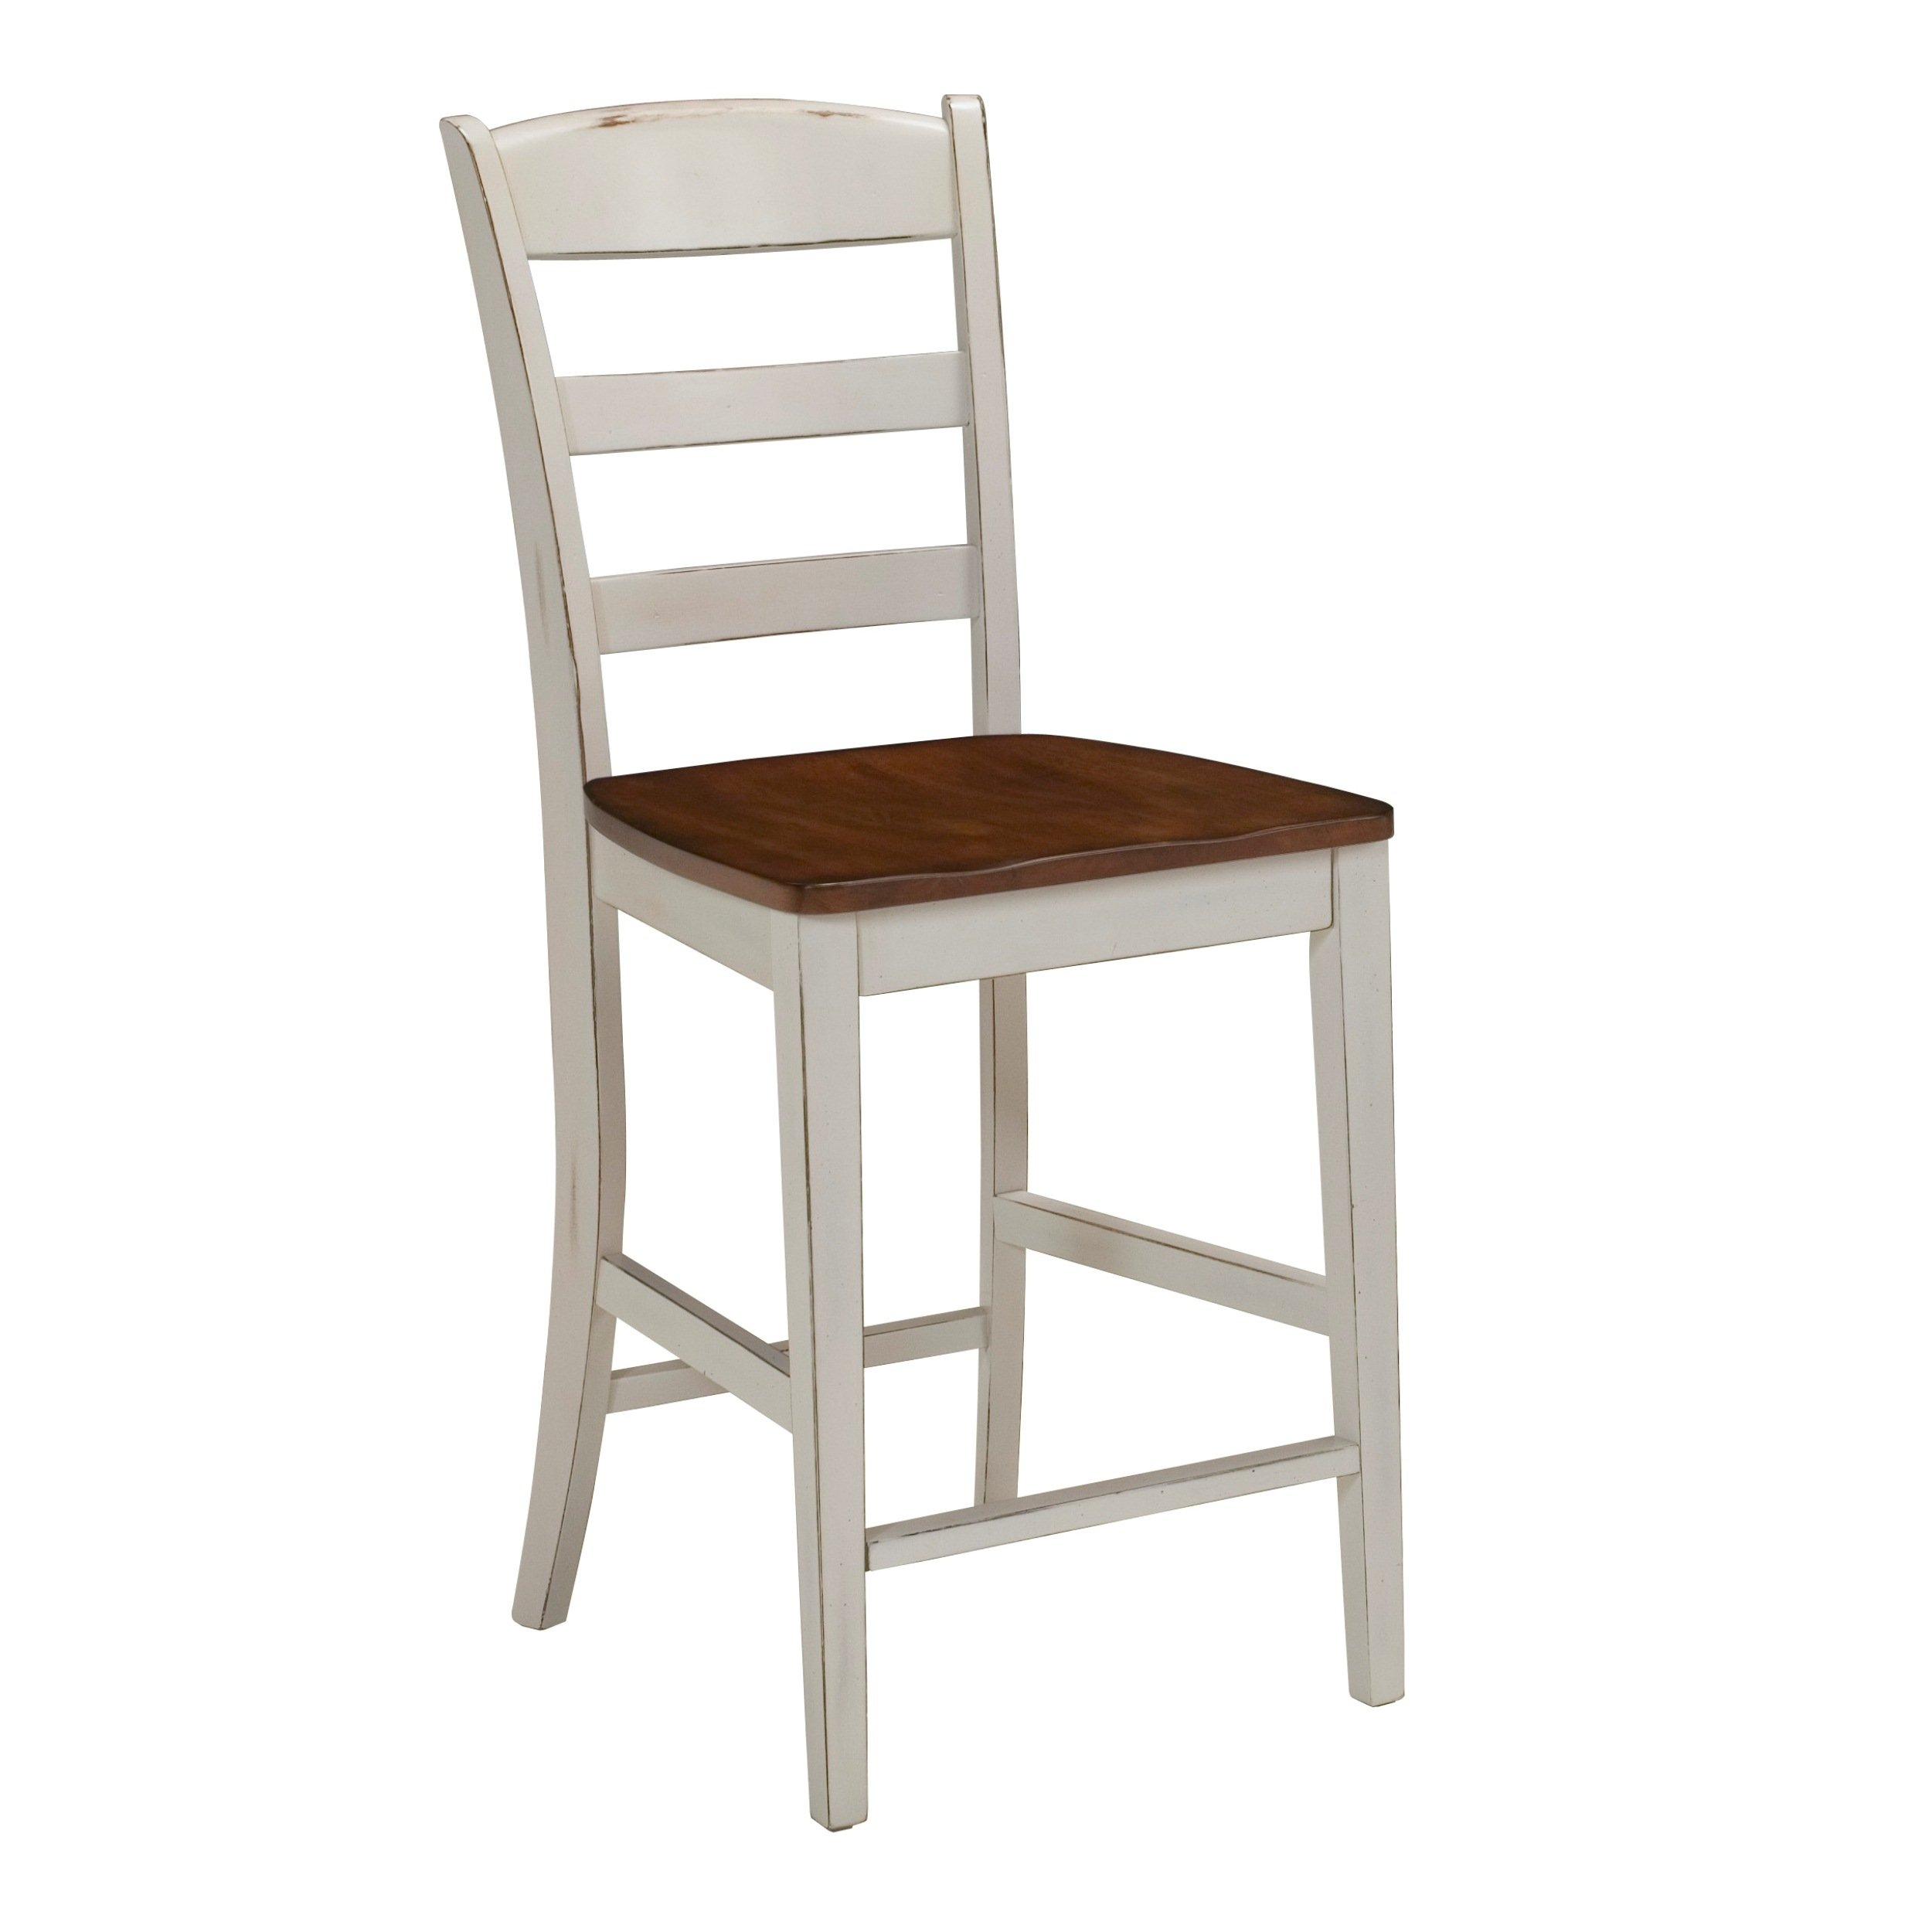 Home Styles 5020-89 Monarch Stool, Antique White Finish, 24-Inch